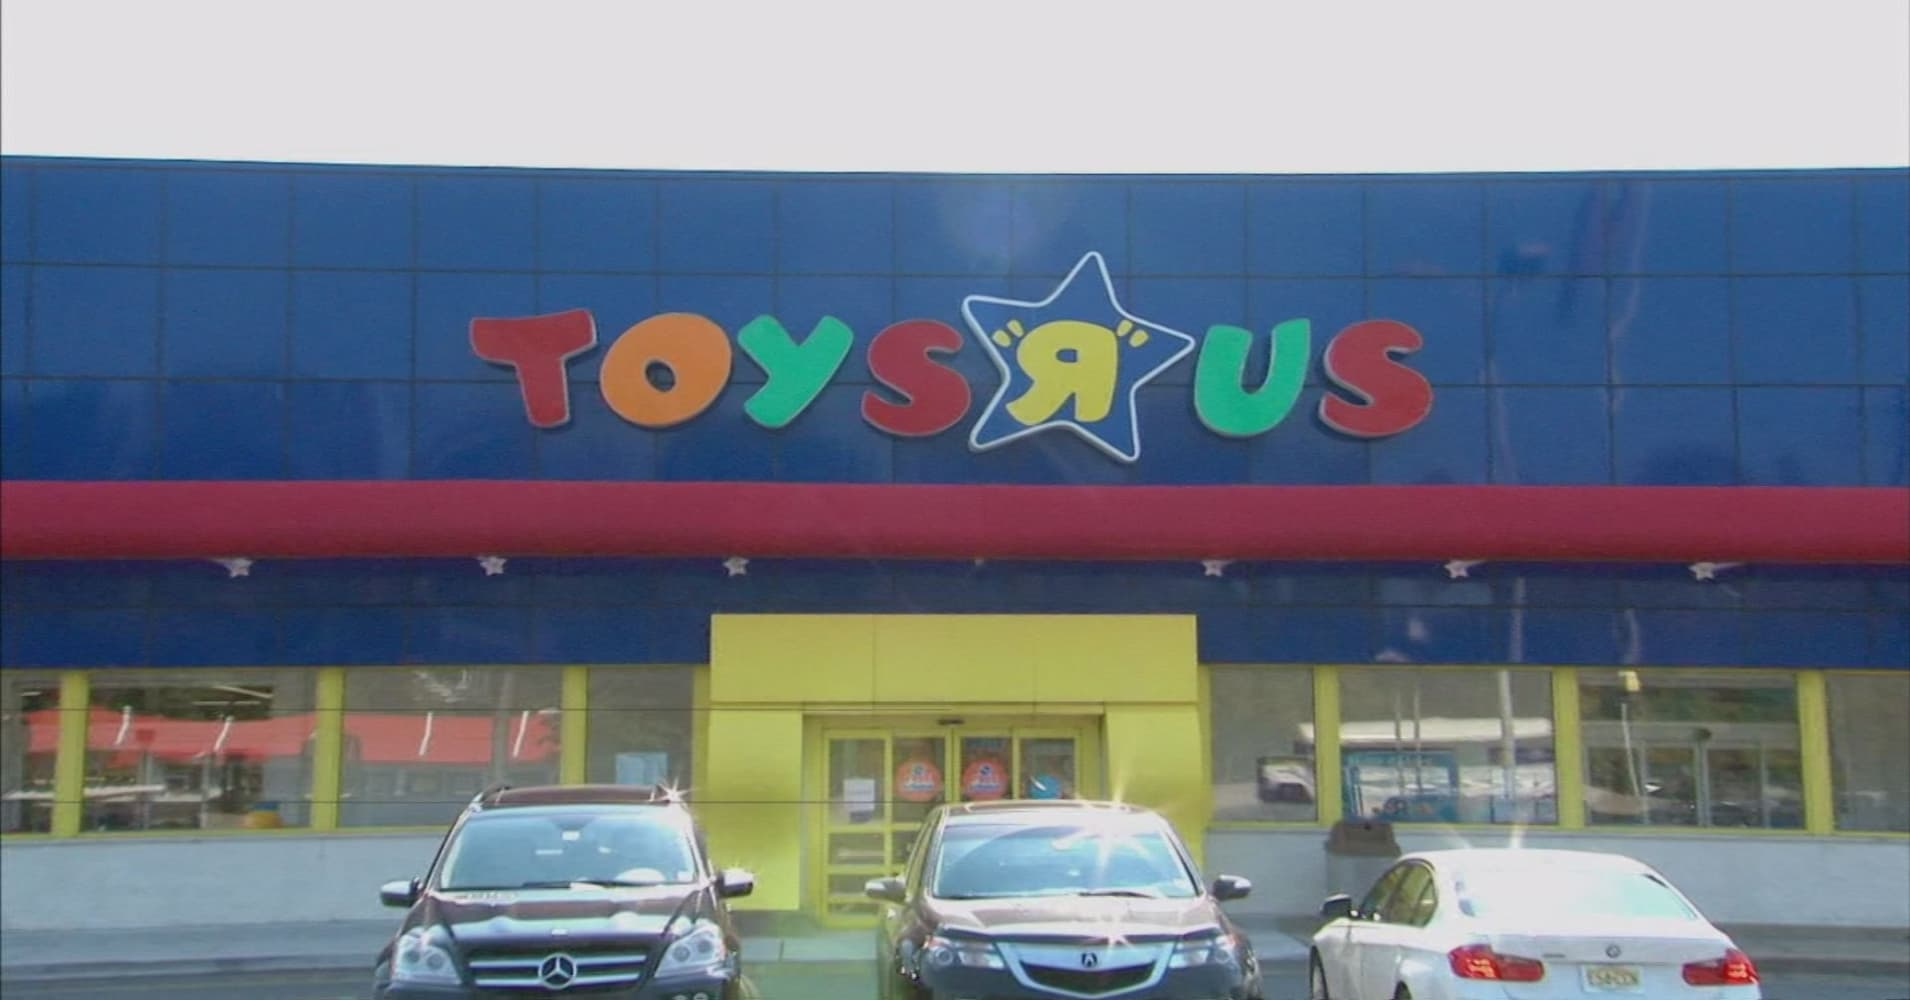 Heres A Map Of Where Toys R Us Stores Are Closing - Toys r us map